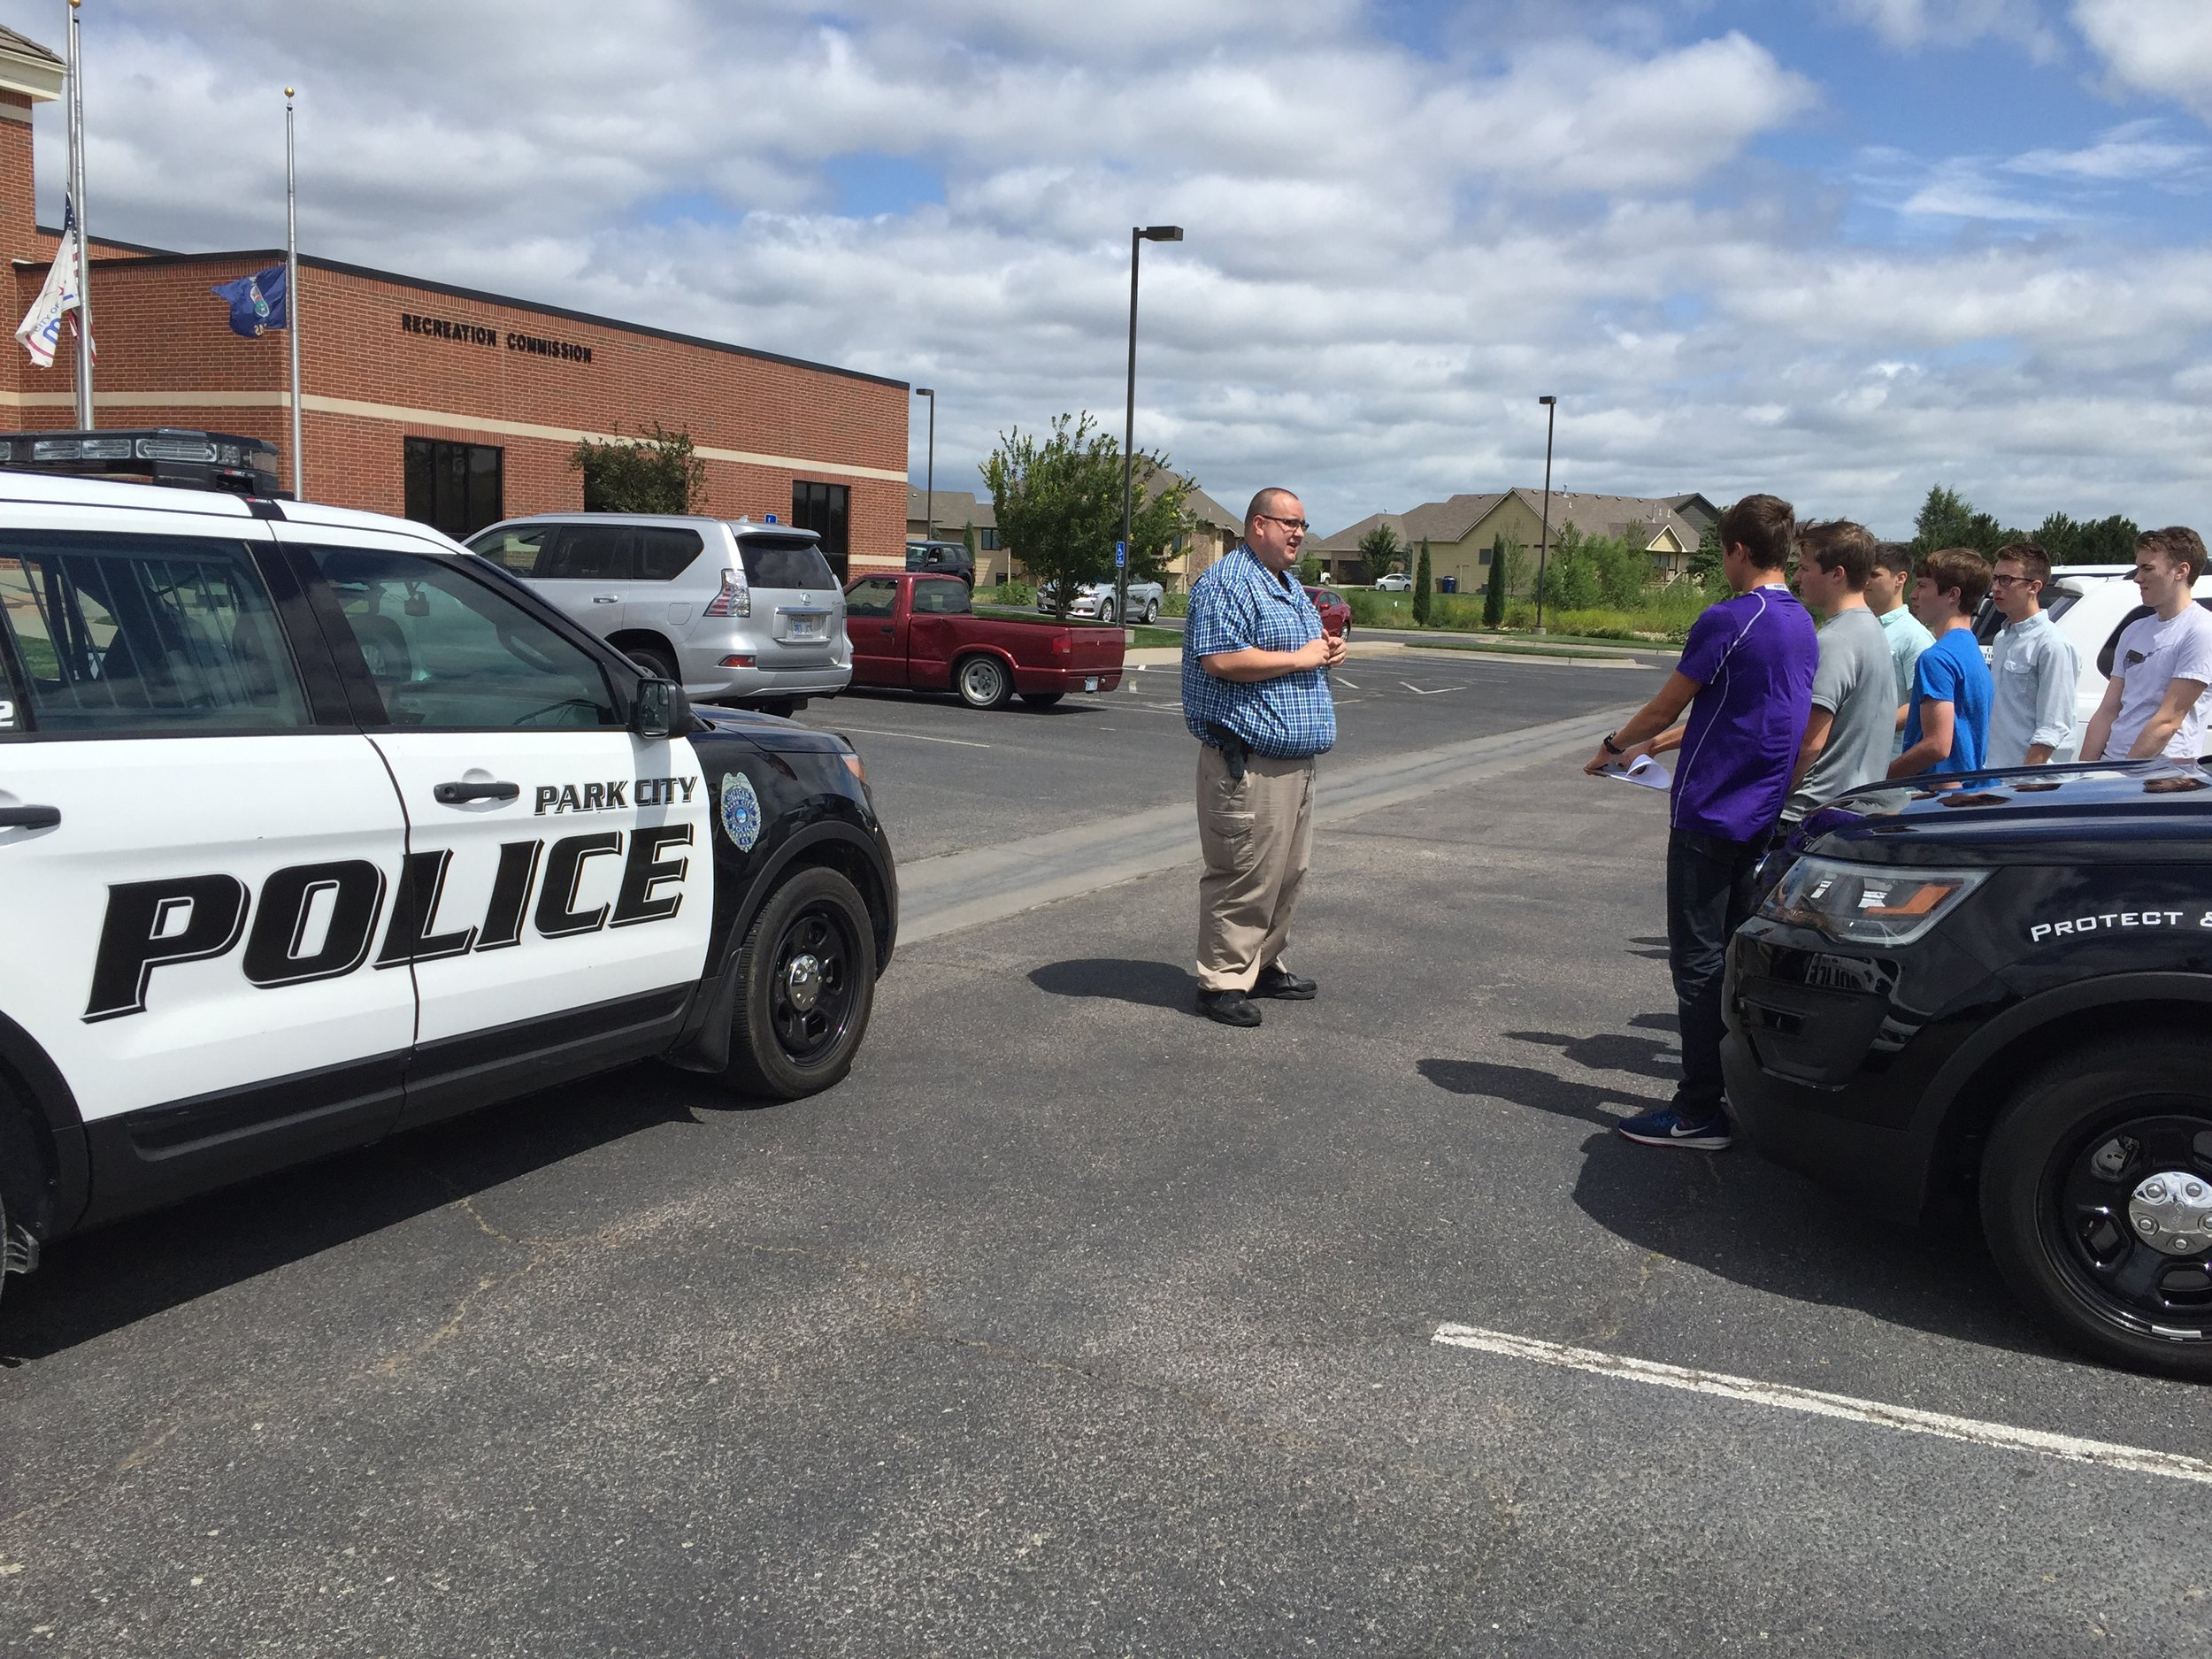 Park City Law Enforcement officer explains police car technology to students